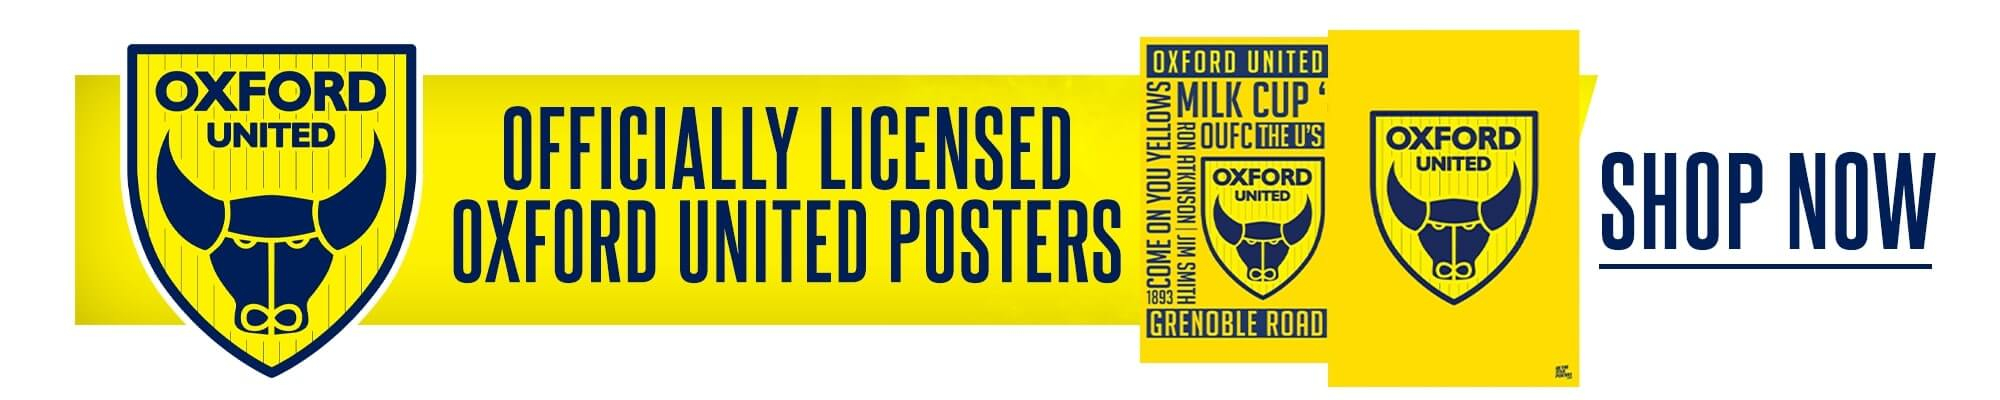 Official Oxford United Posters